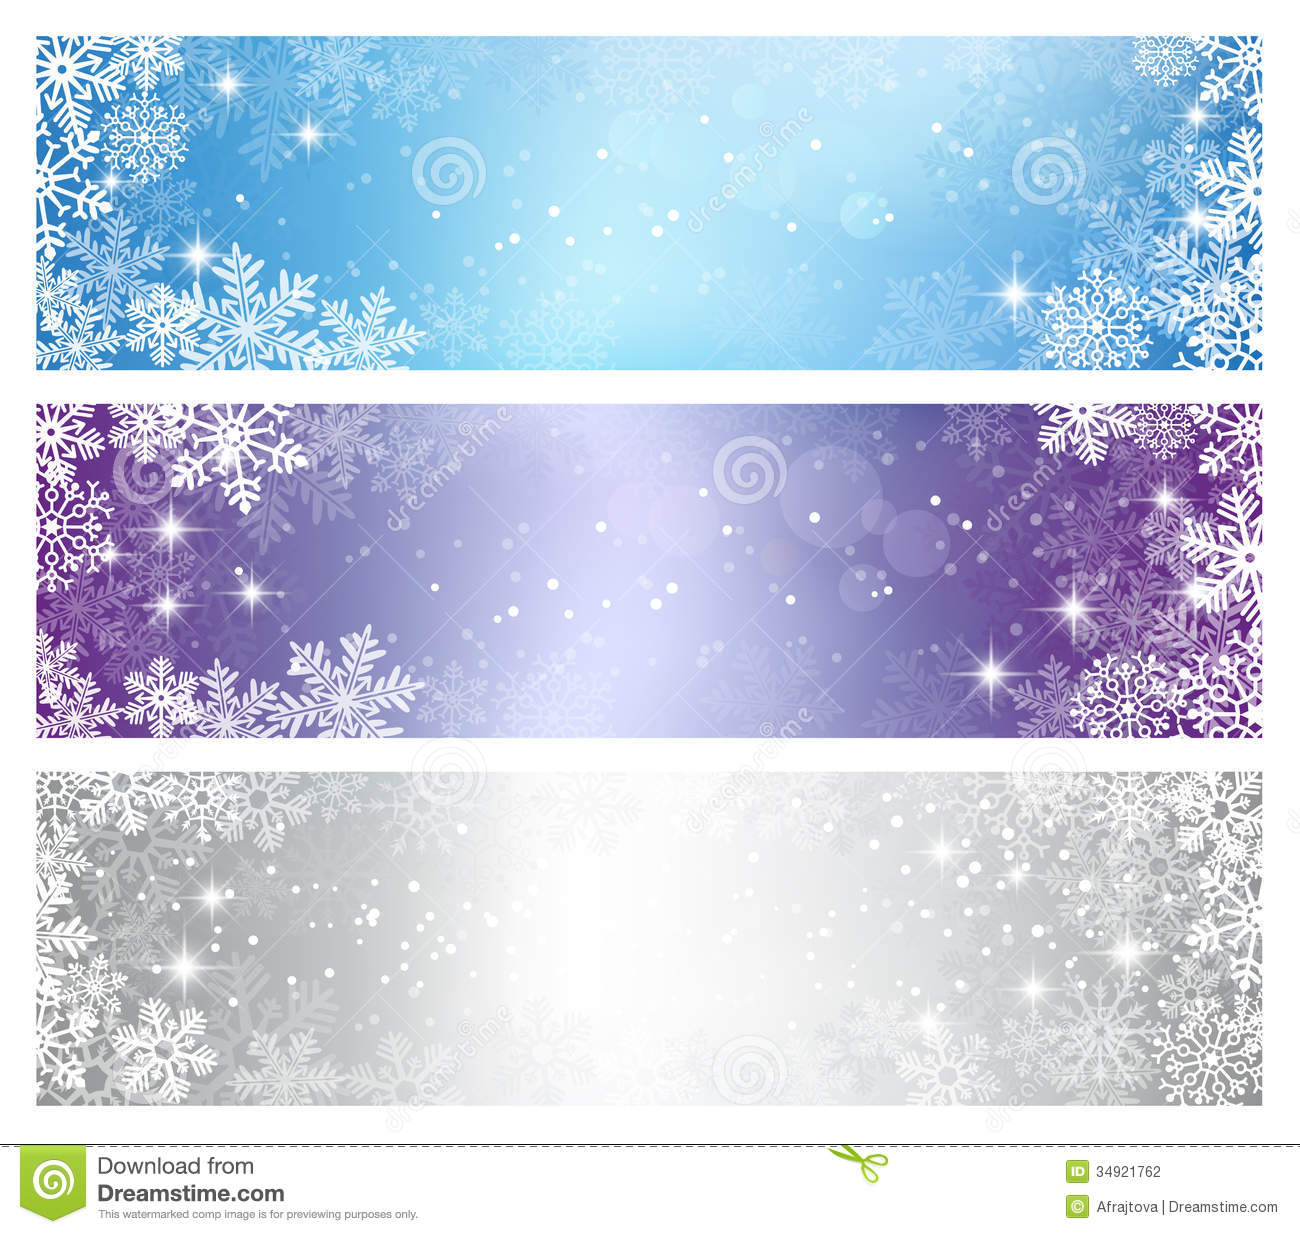 Winter Holiday Banners Cross Platform App Development Banners